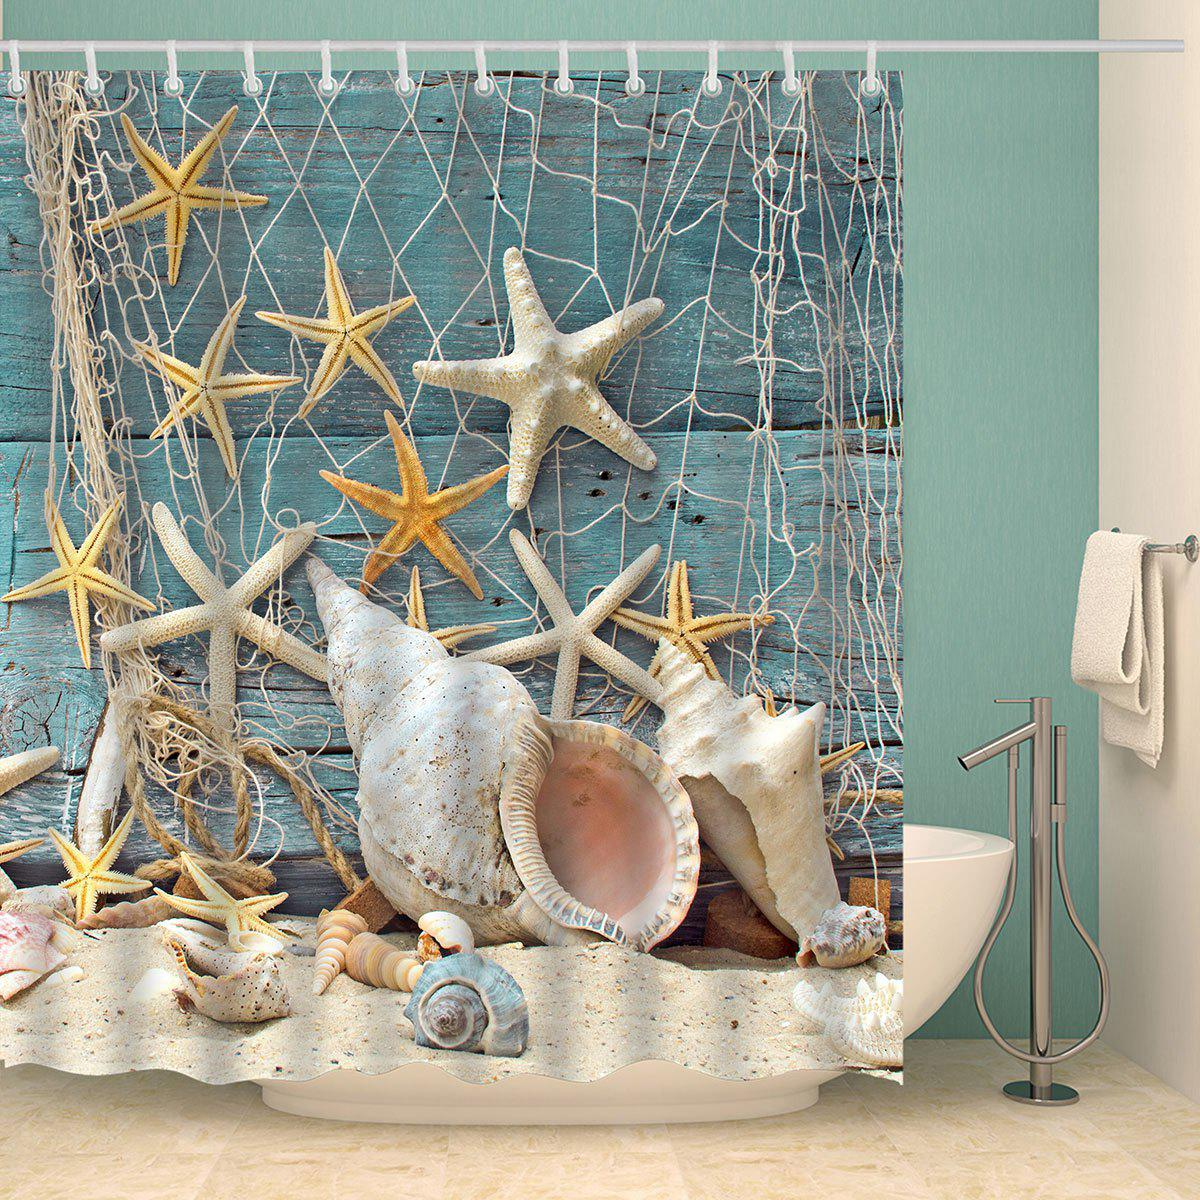 Waterproof Starfish and Shell Print Shower Curtain - COLORMIX W71 INCH * L79 INCH